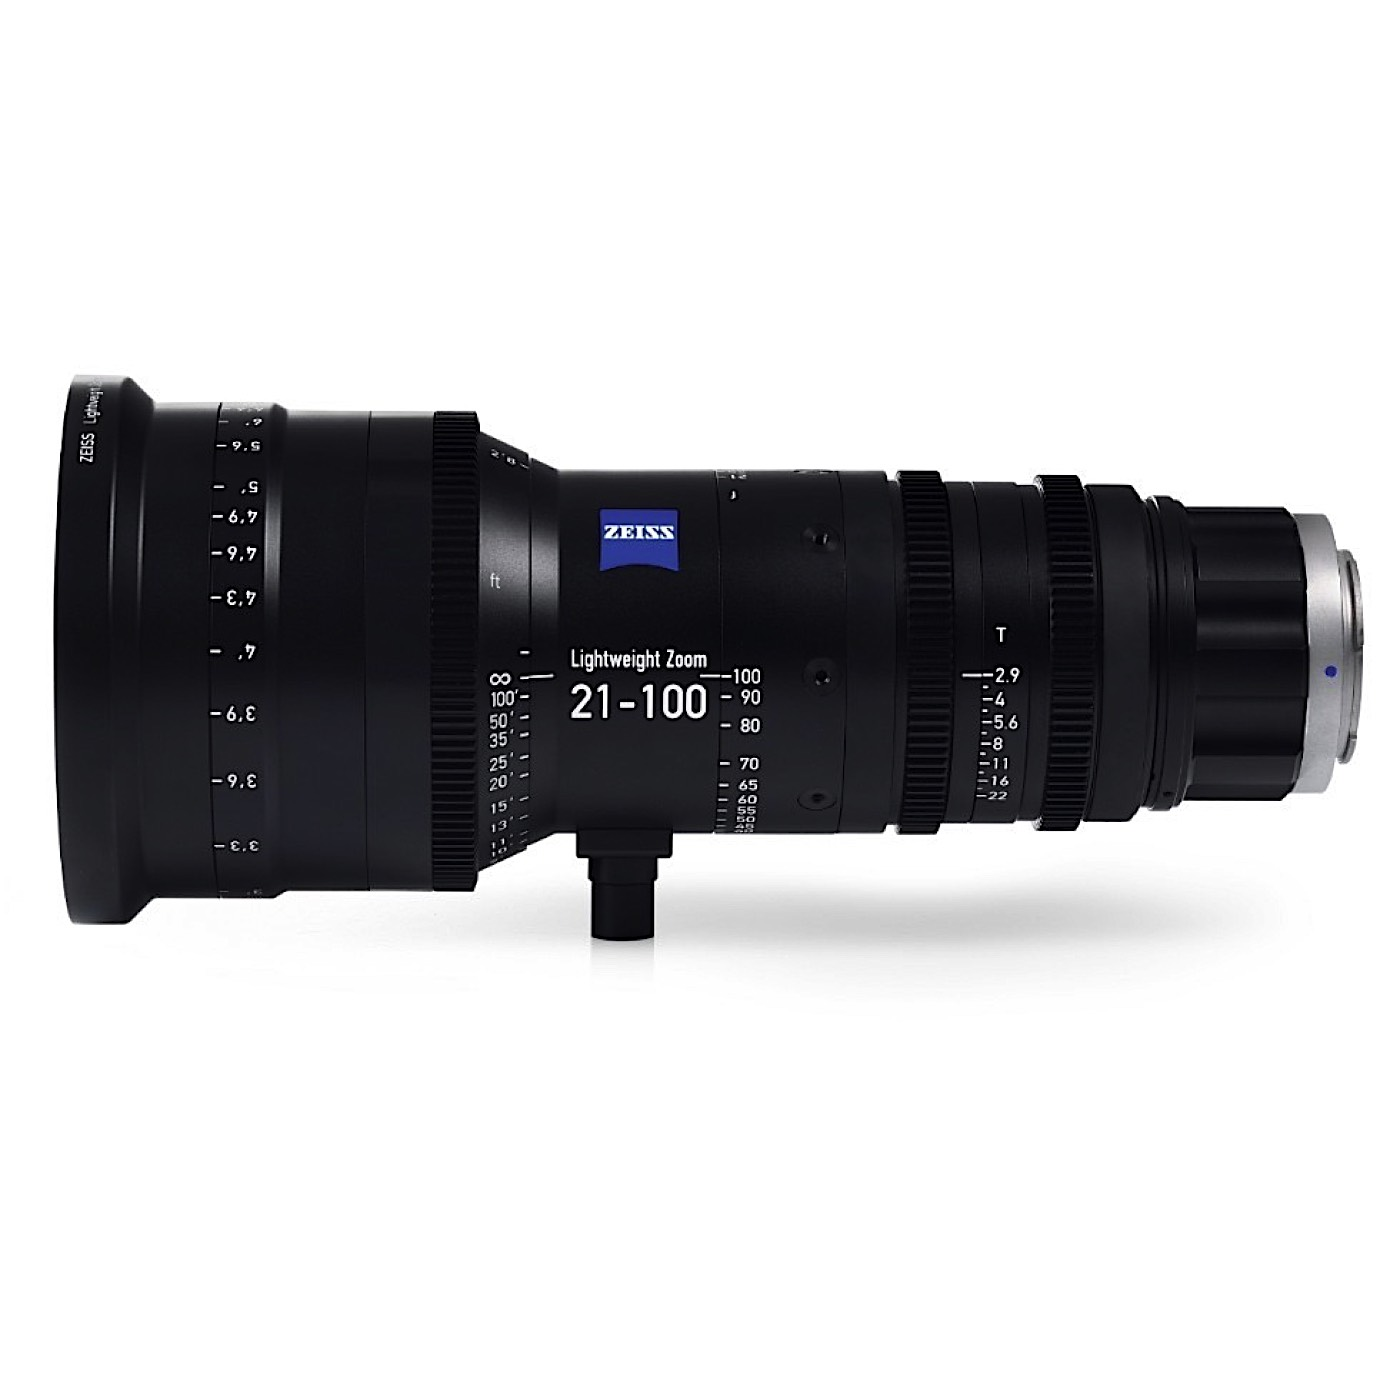 Zeiss 21-100mm Lightweight Zoom Lens